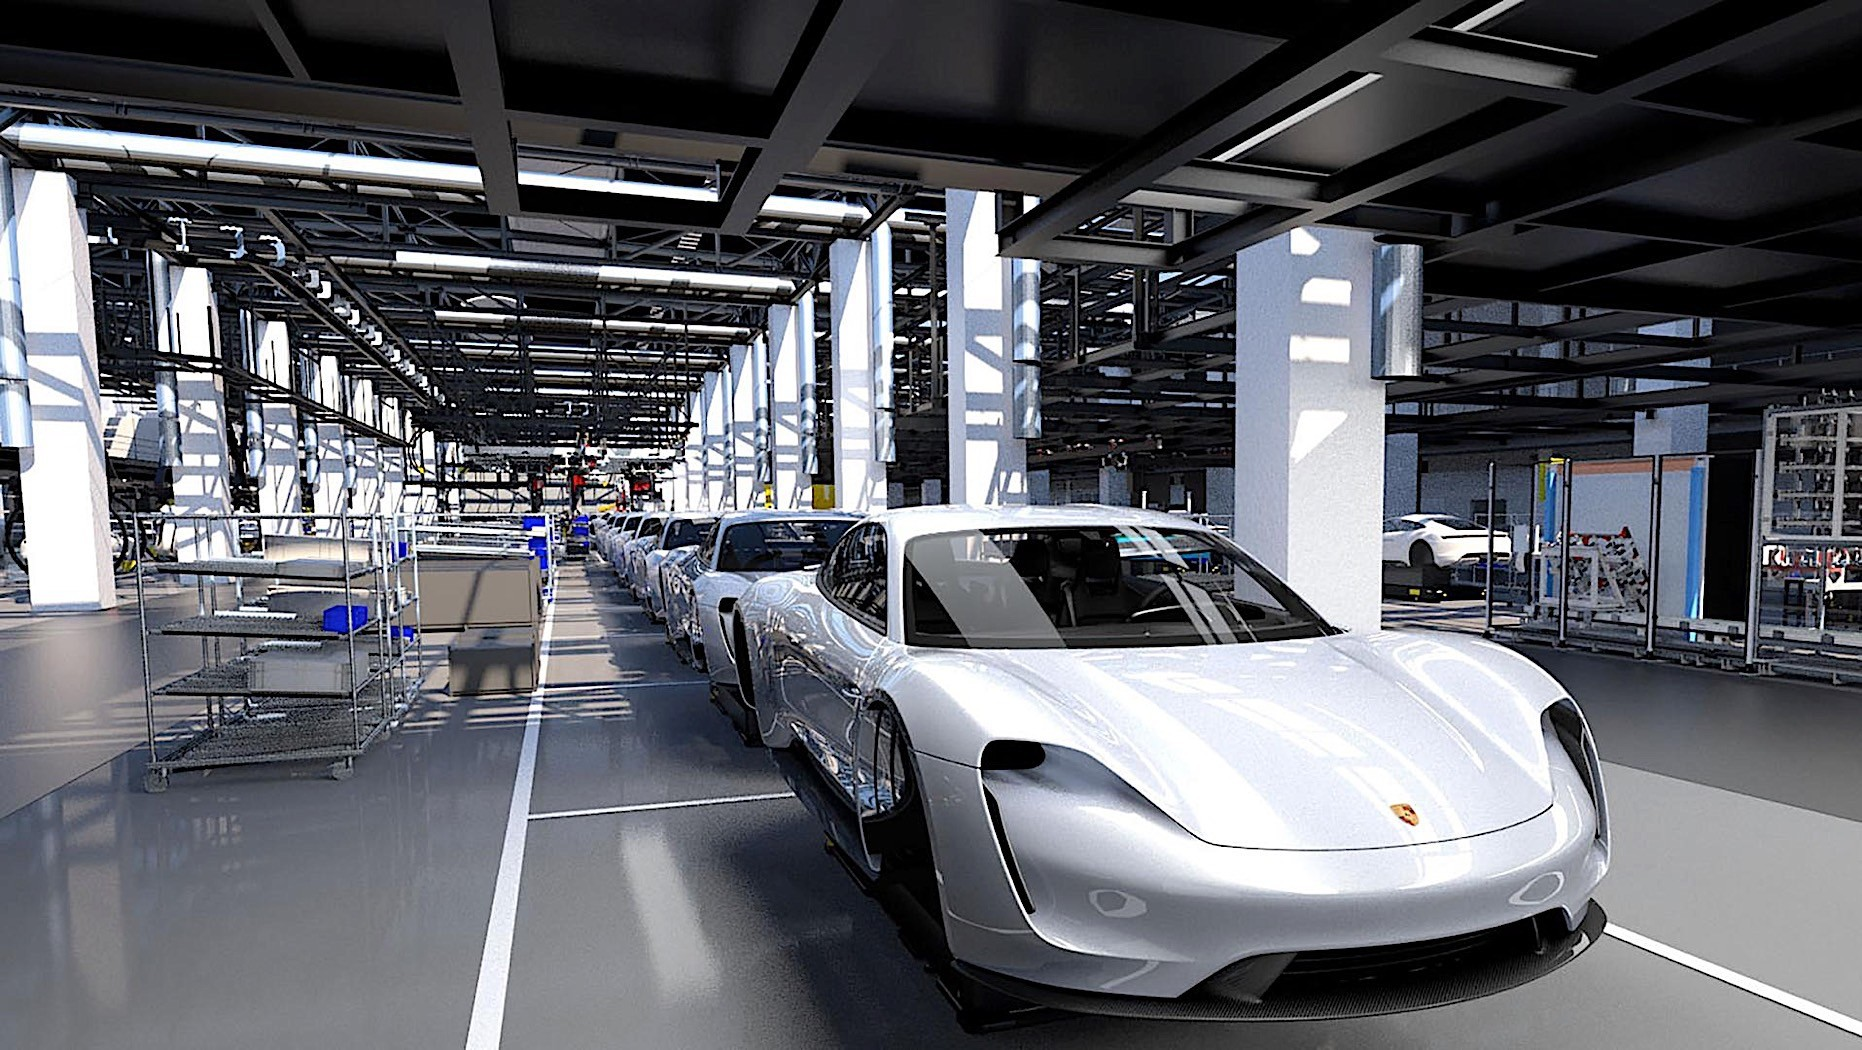 Electric Porsche Taycan Shows Up On The Production Line In